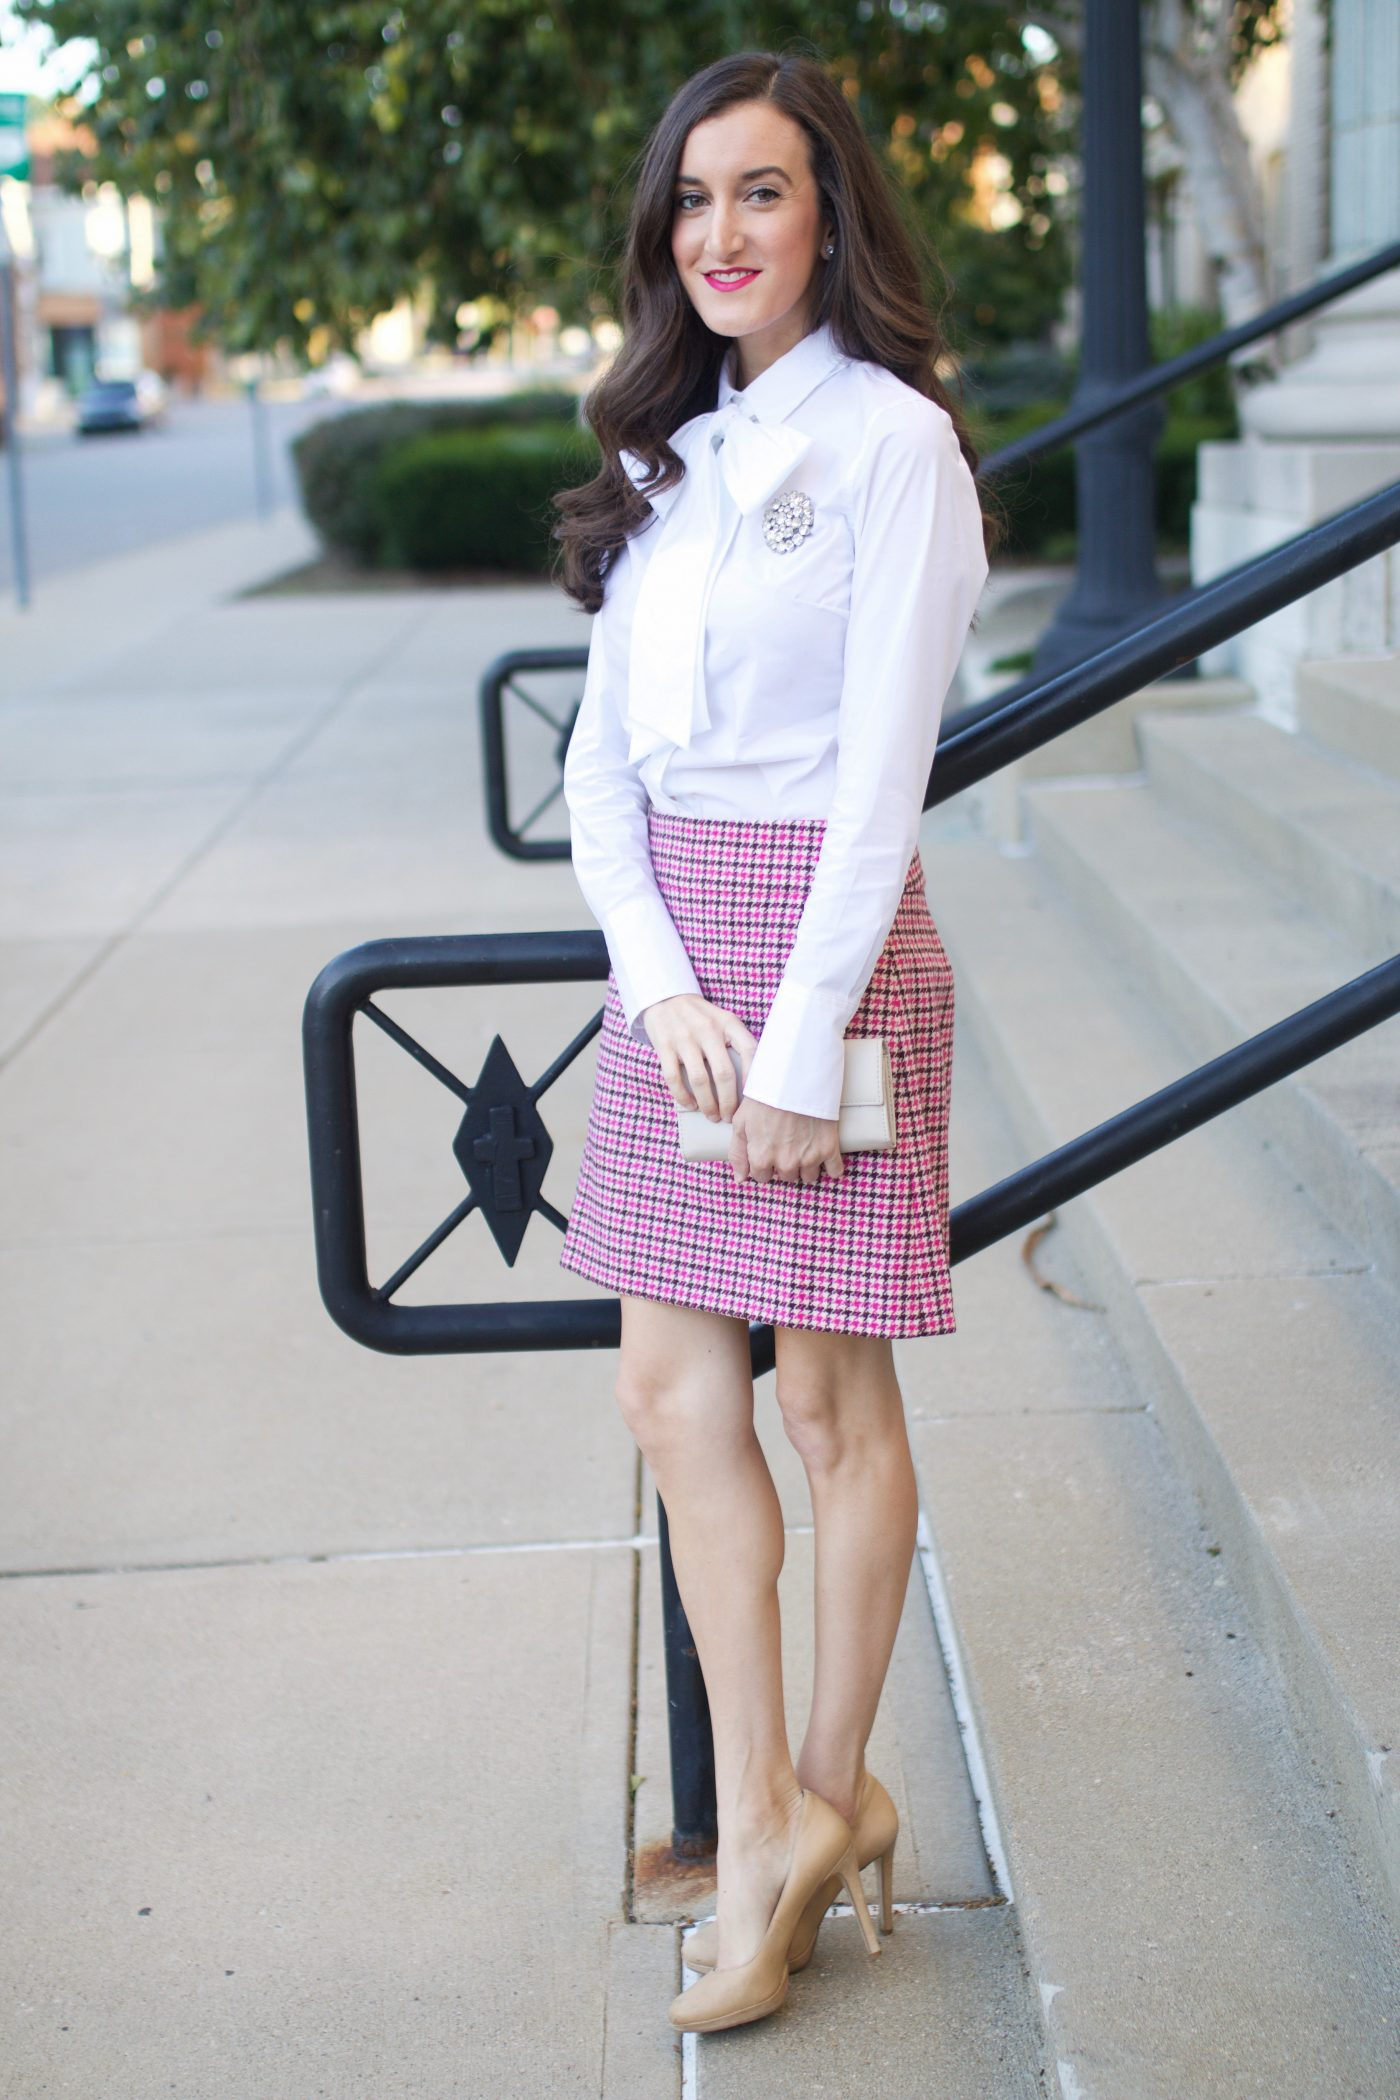 Banana Republic Bow Blouse | J.Crew Houndstooth Skirt | BCBGeneration Pumps